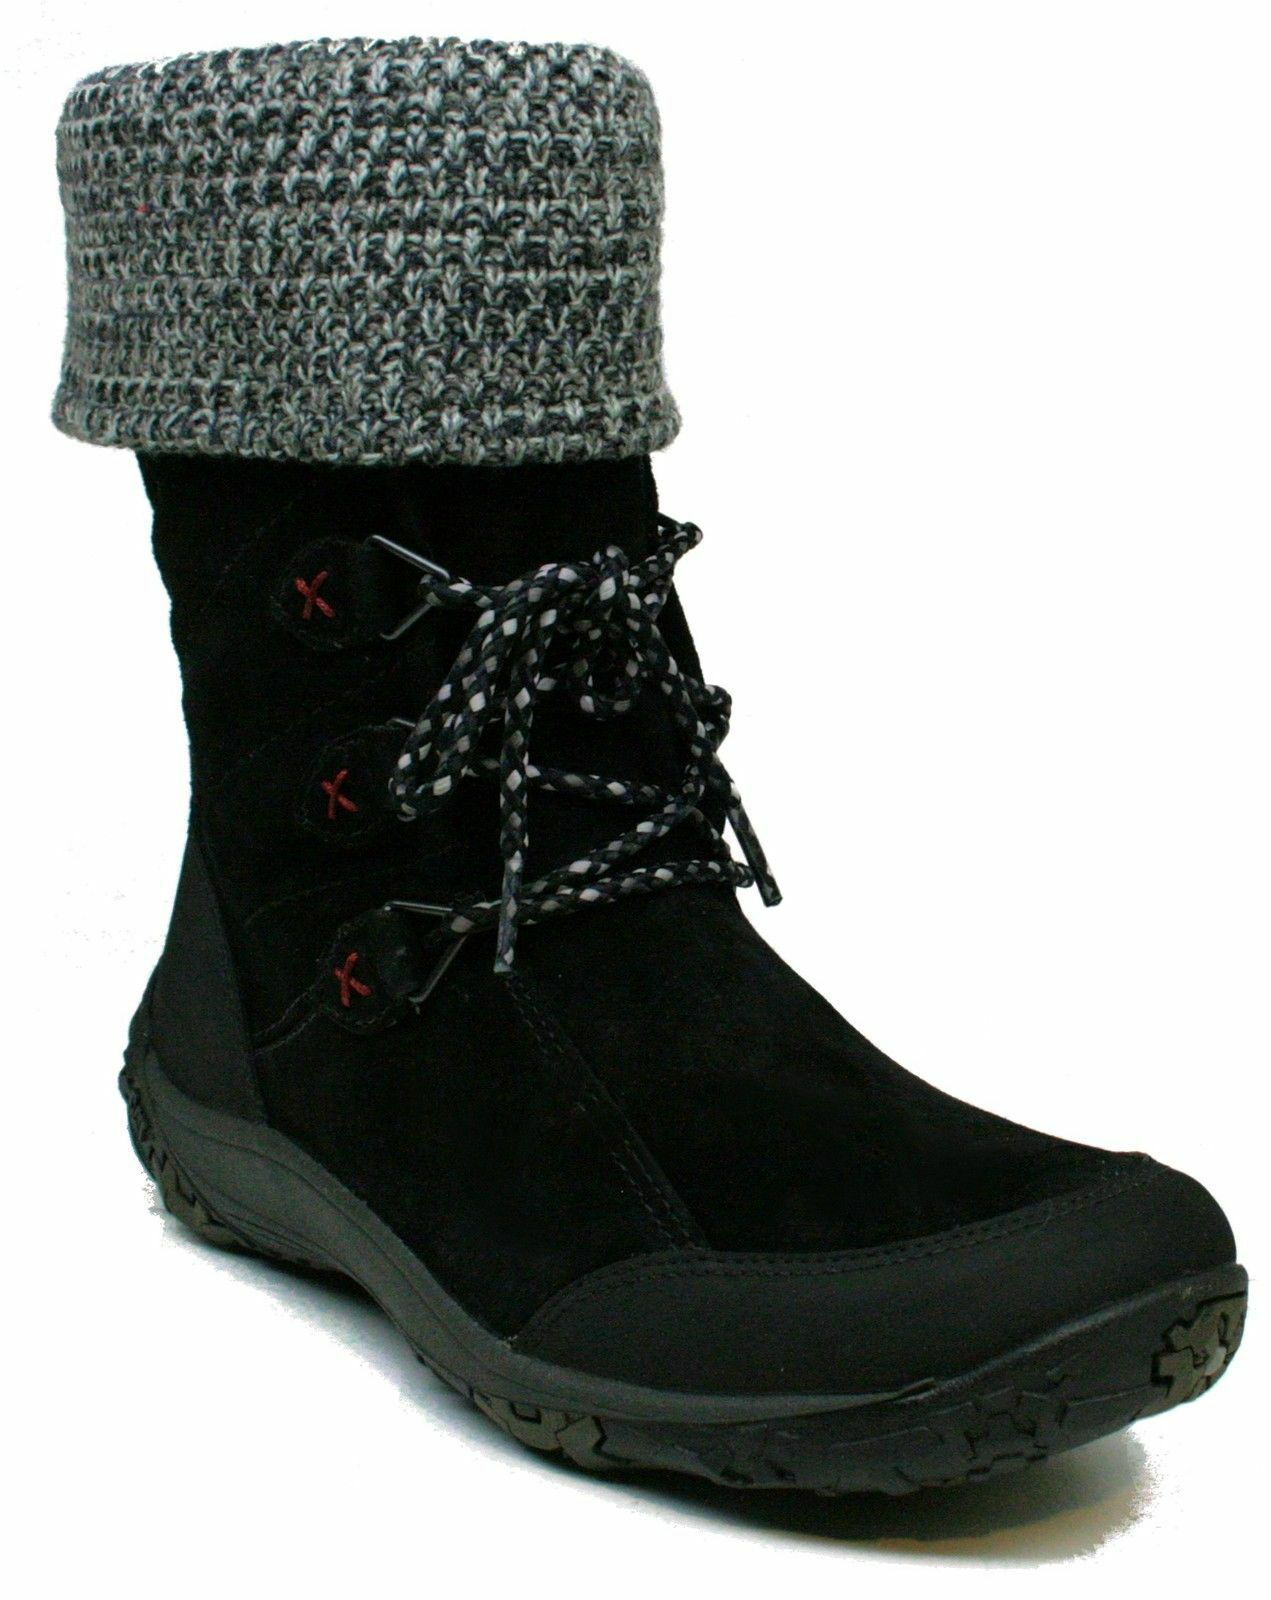 Womens Caterpillar®  Ember  P305781 Water Resistant Boots shoes Knit Cuffed Sz 8